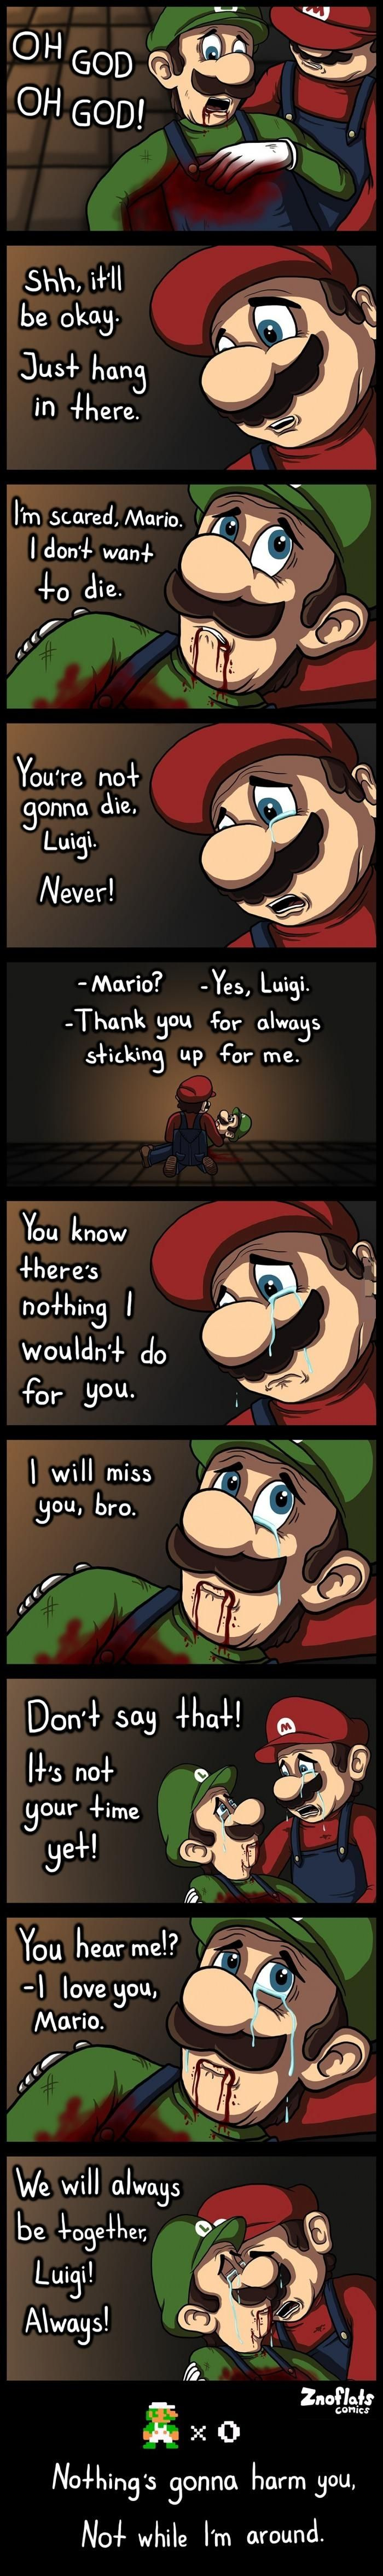 The Love Story Between Mario and Luigi